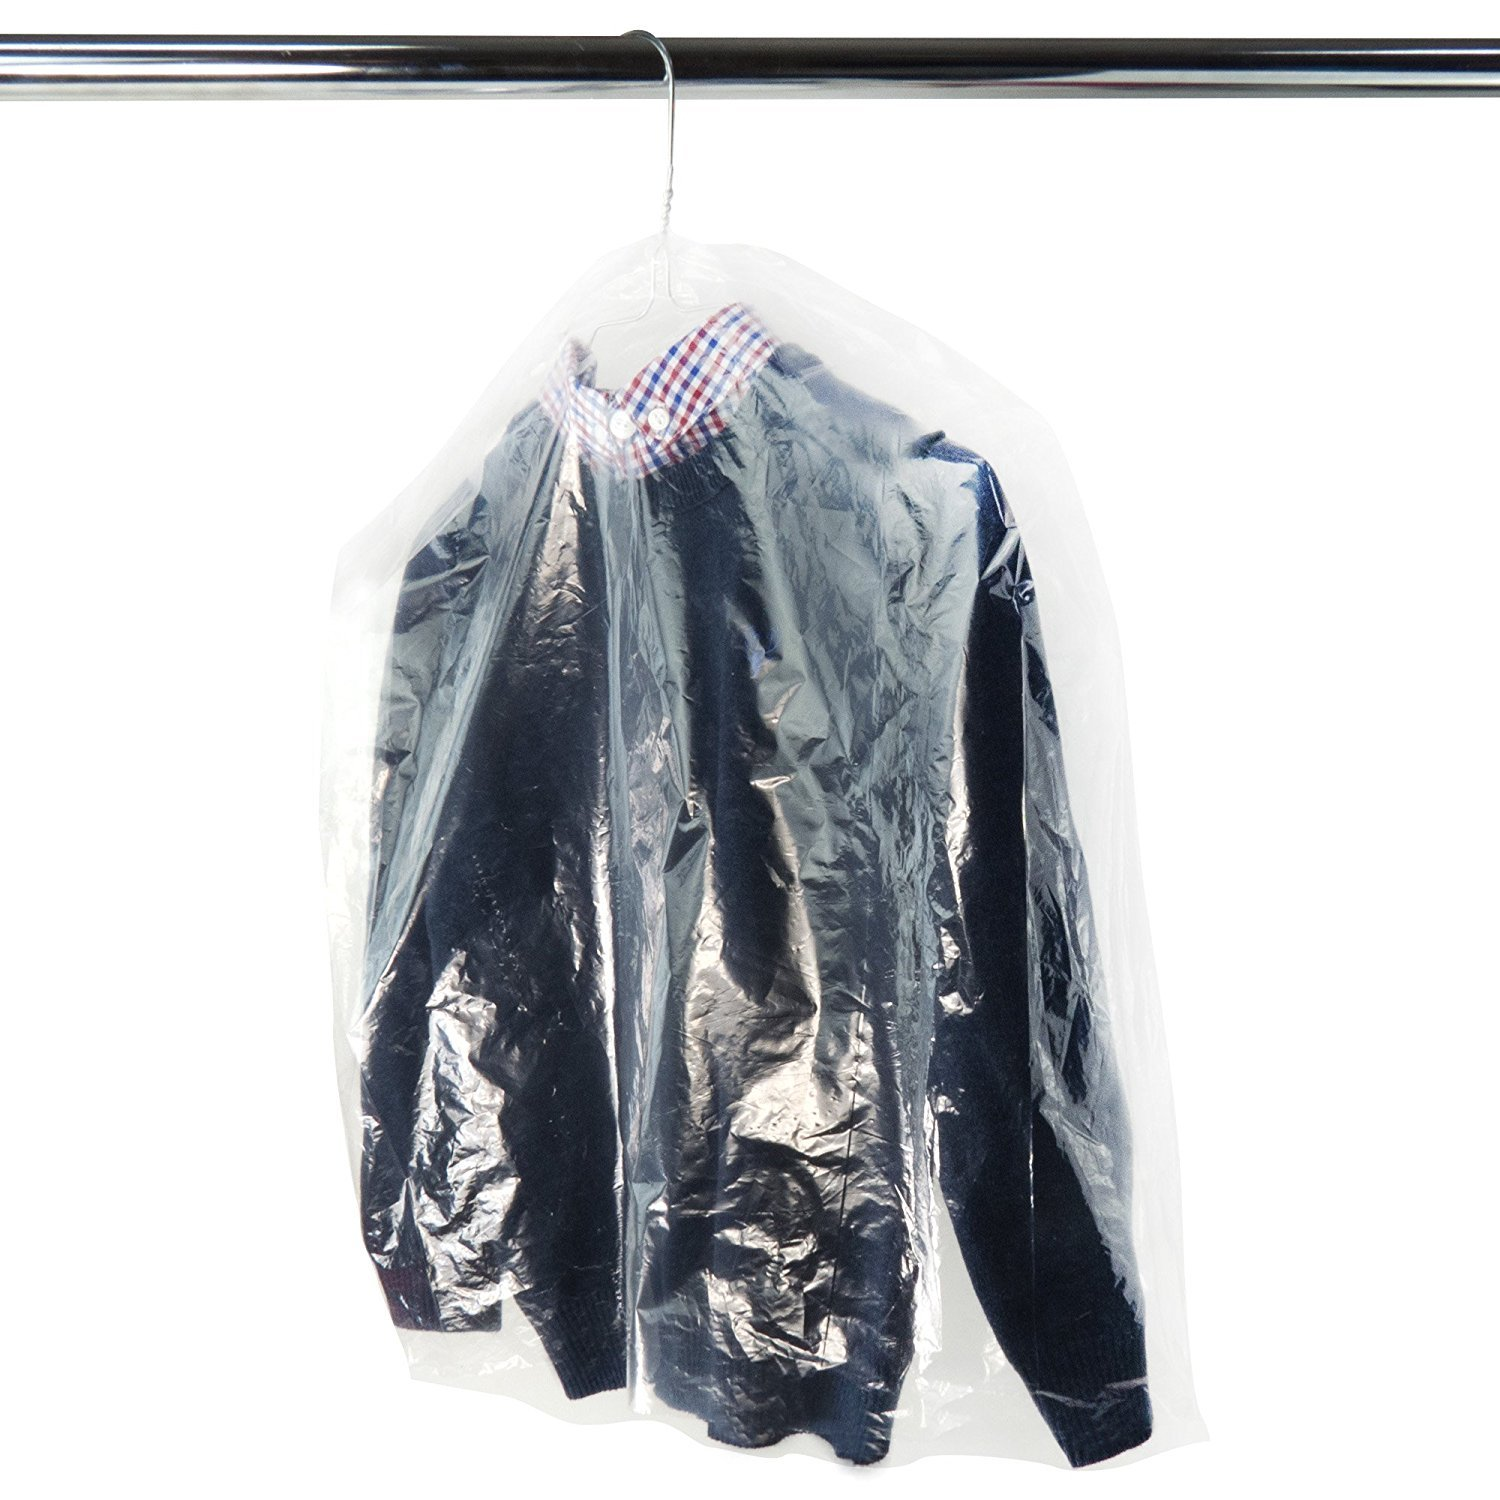 HANGERWORLD 30 Clear 20inch x 20inch Dry Cleaning Laundry Polythylene Clothes Garment Cover Protector Bags with 4inch Gusset